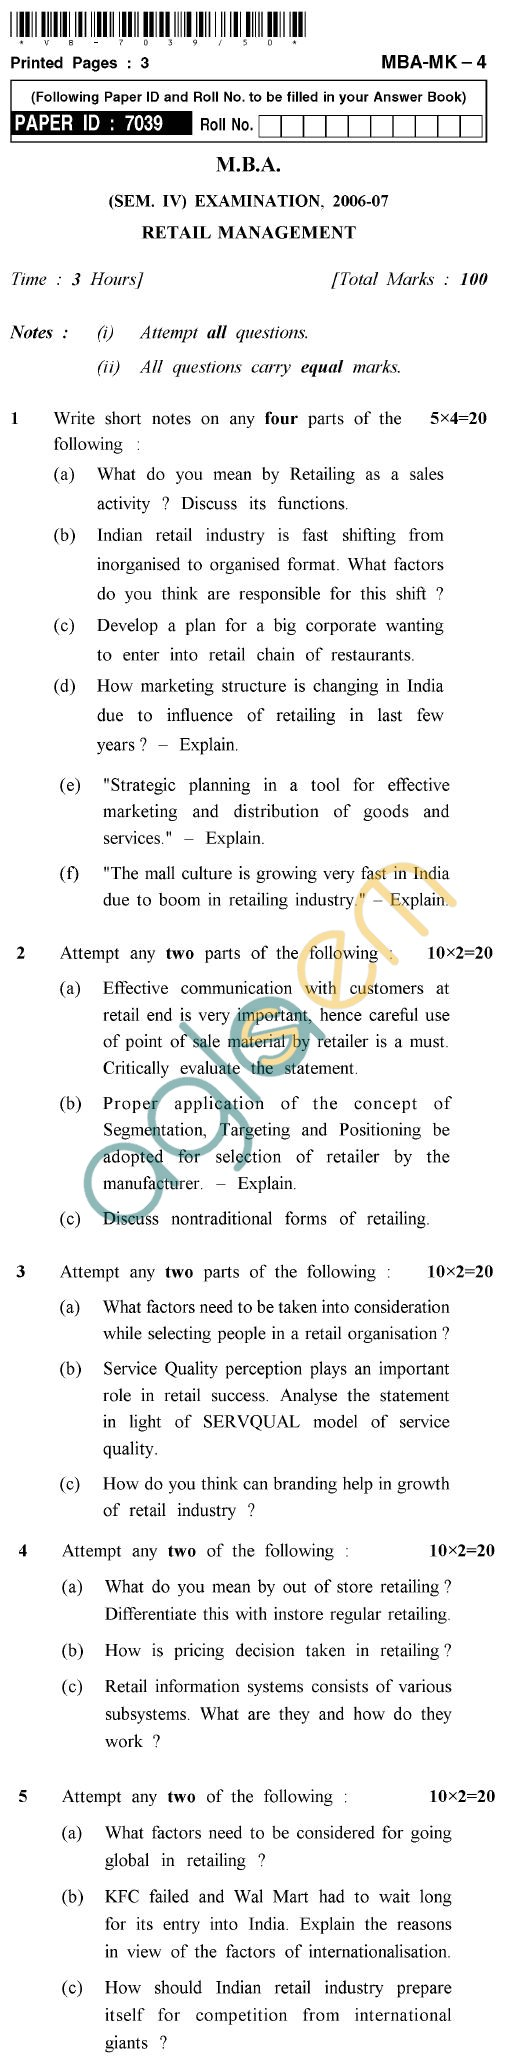 UPTU M.B.A. Question Papers - MBA-MK-04-Retail Management